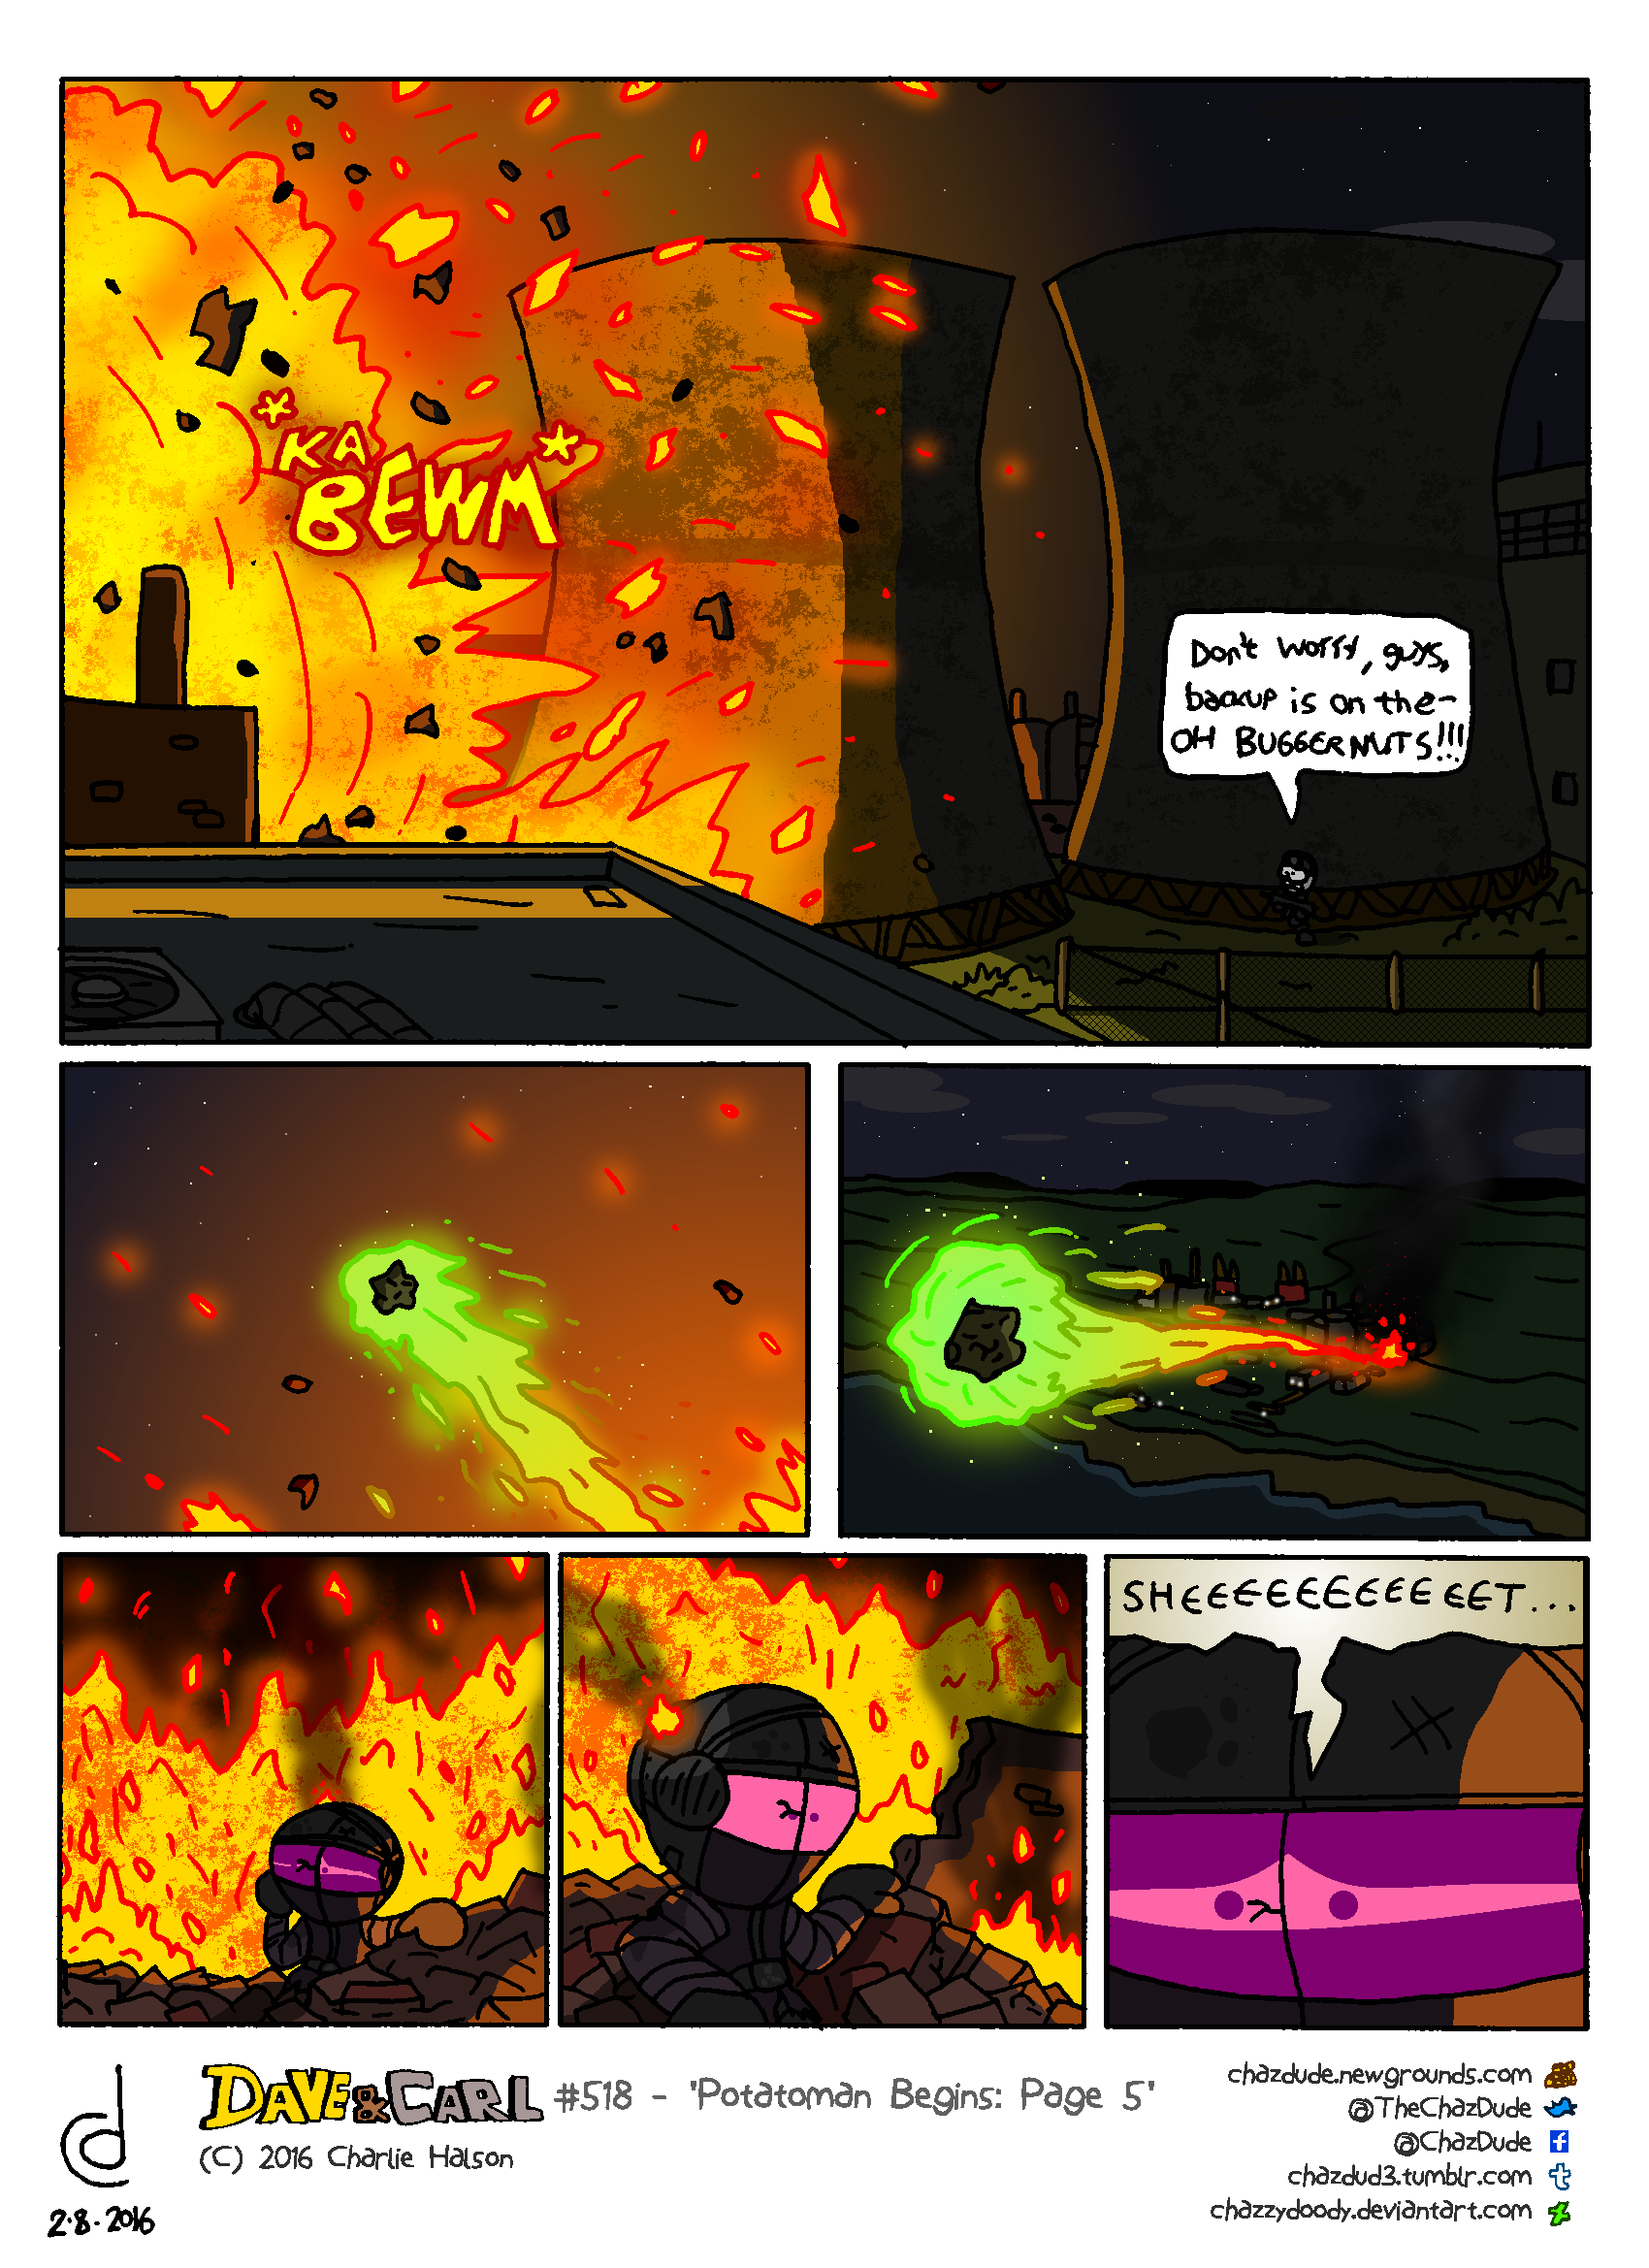 Potatoman Begins: Page 5